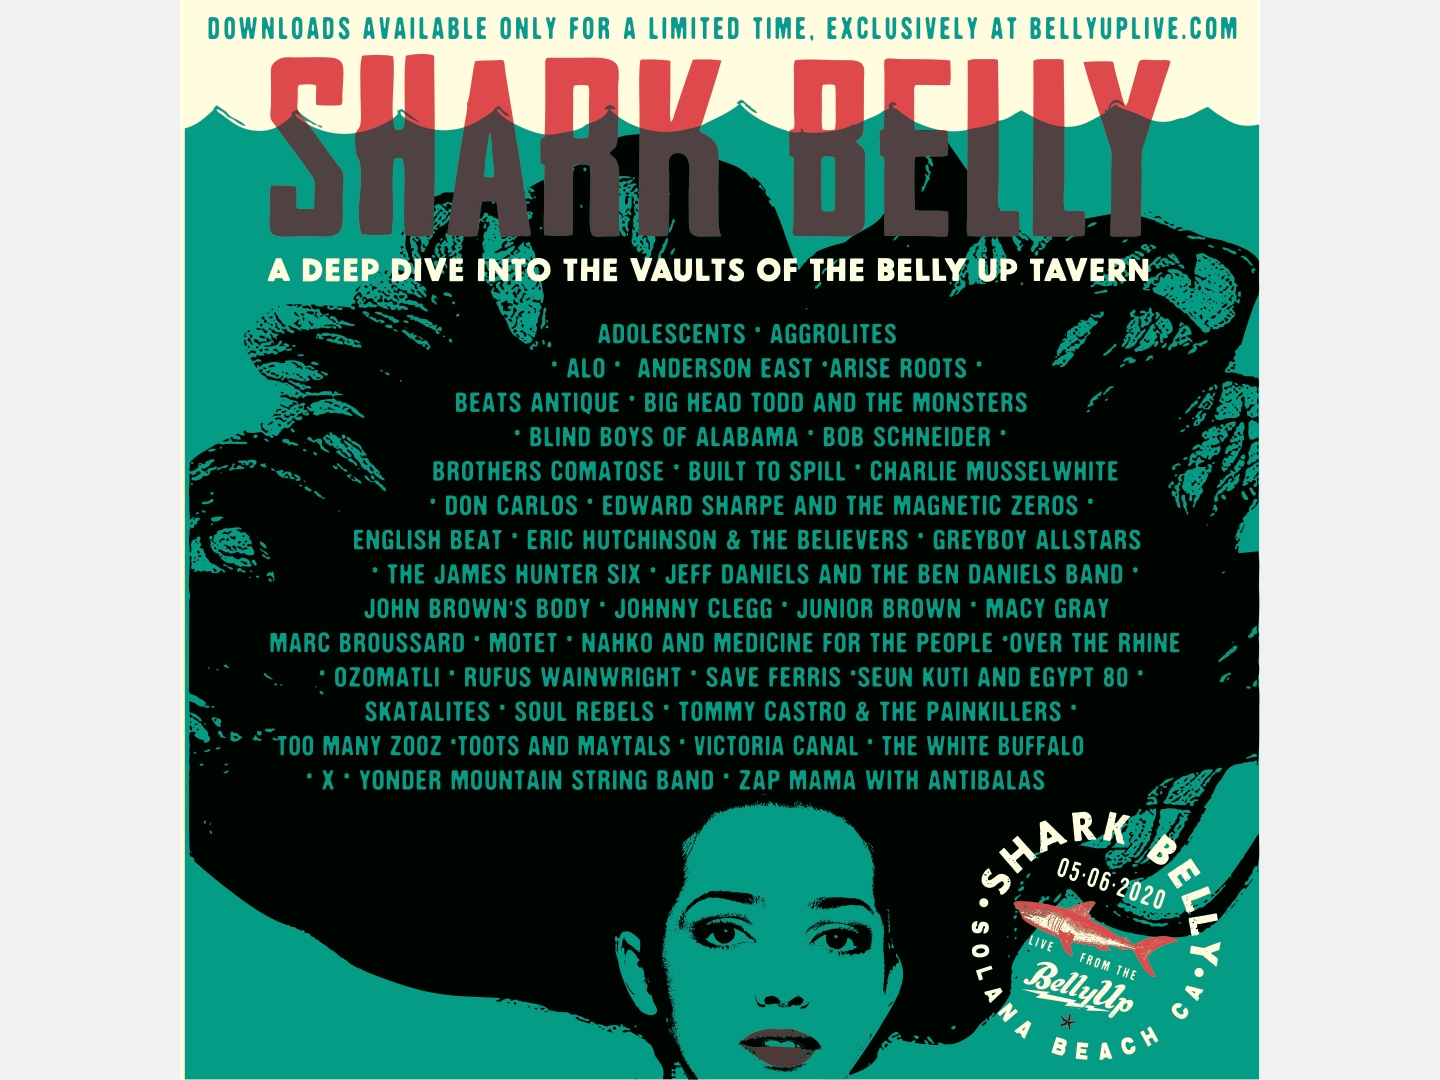 North County's Belly Up Tavern Announces 'SharkBelly' Festival